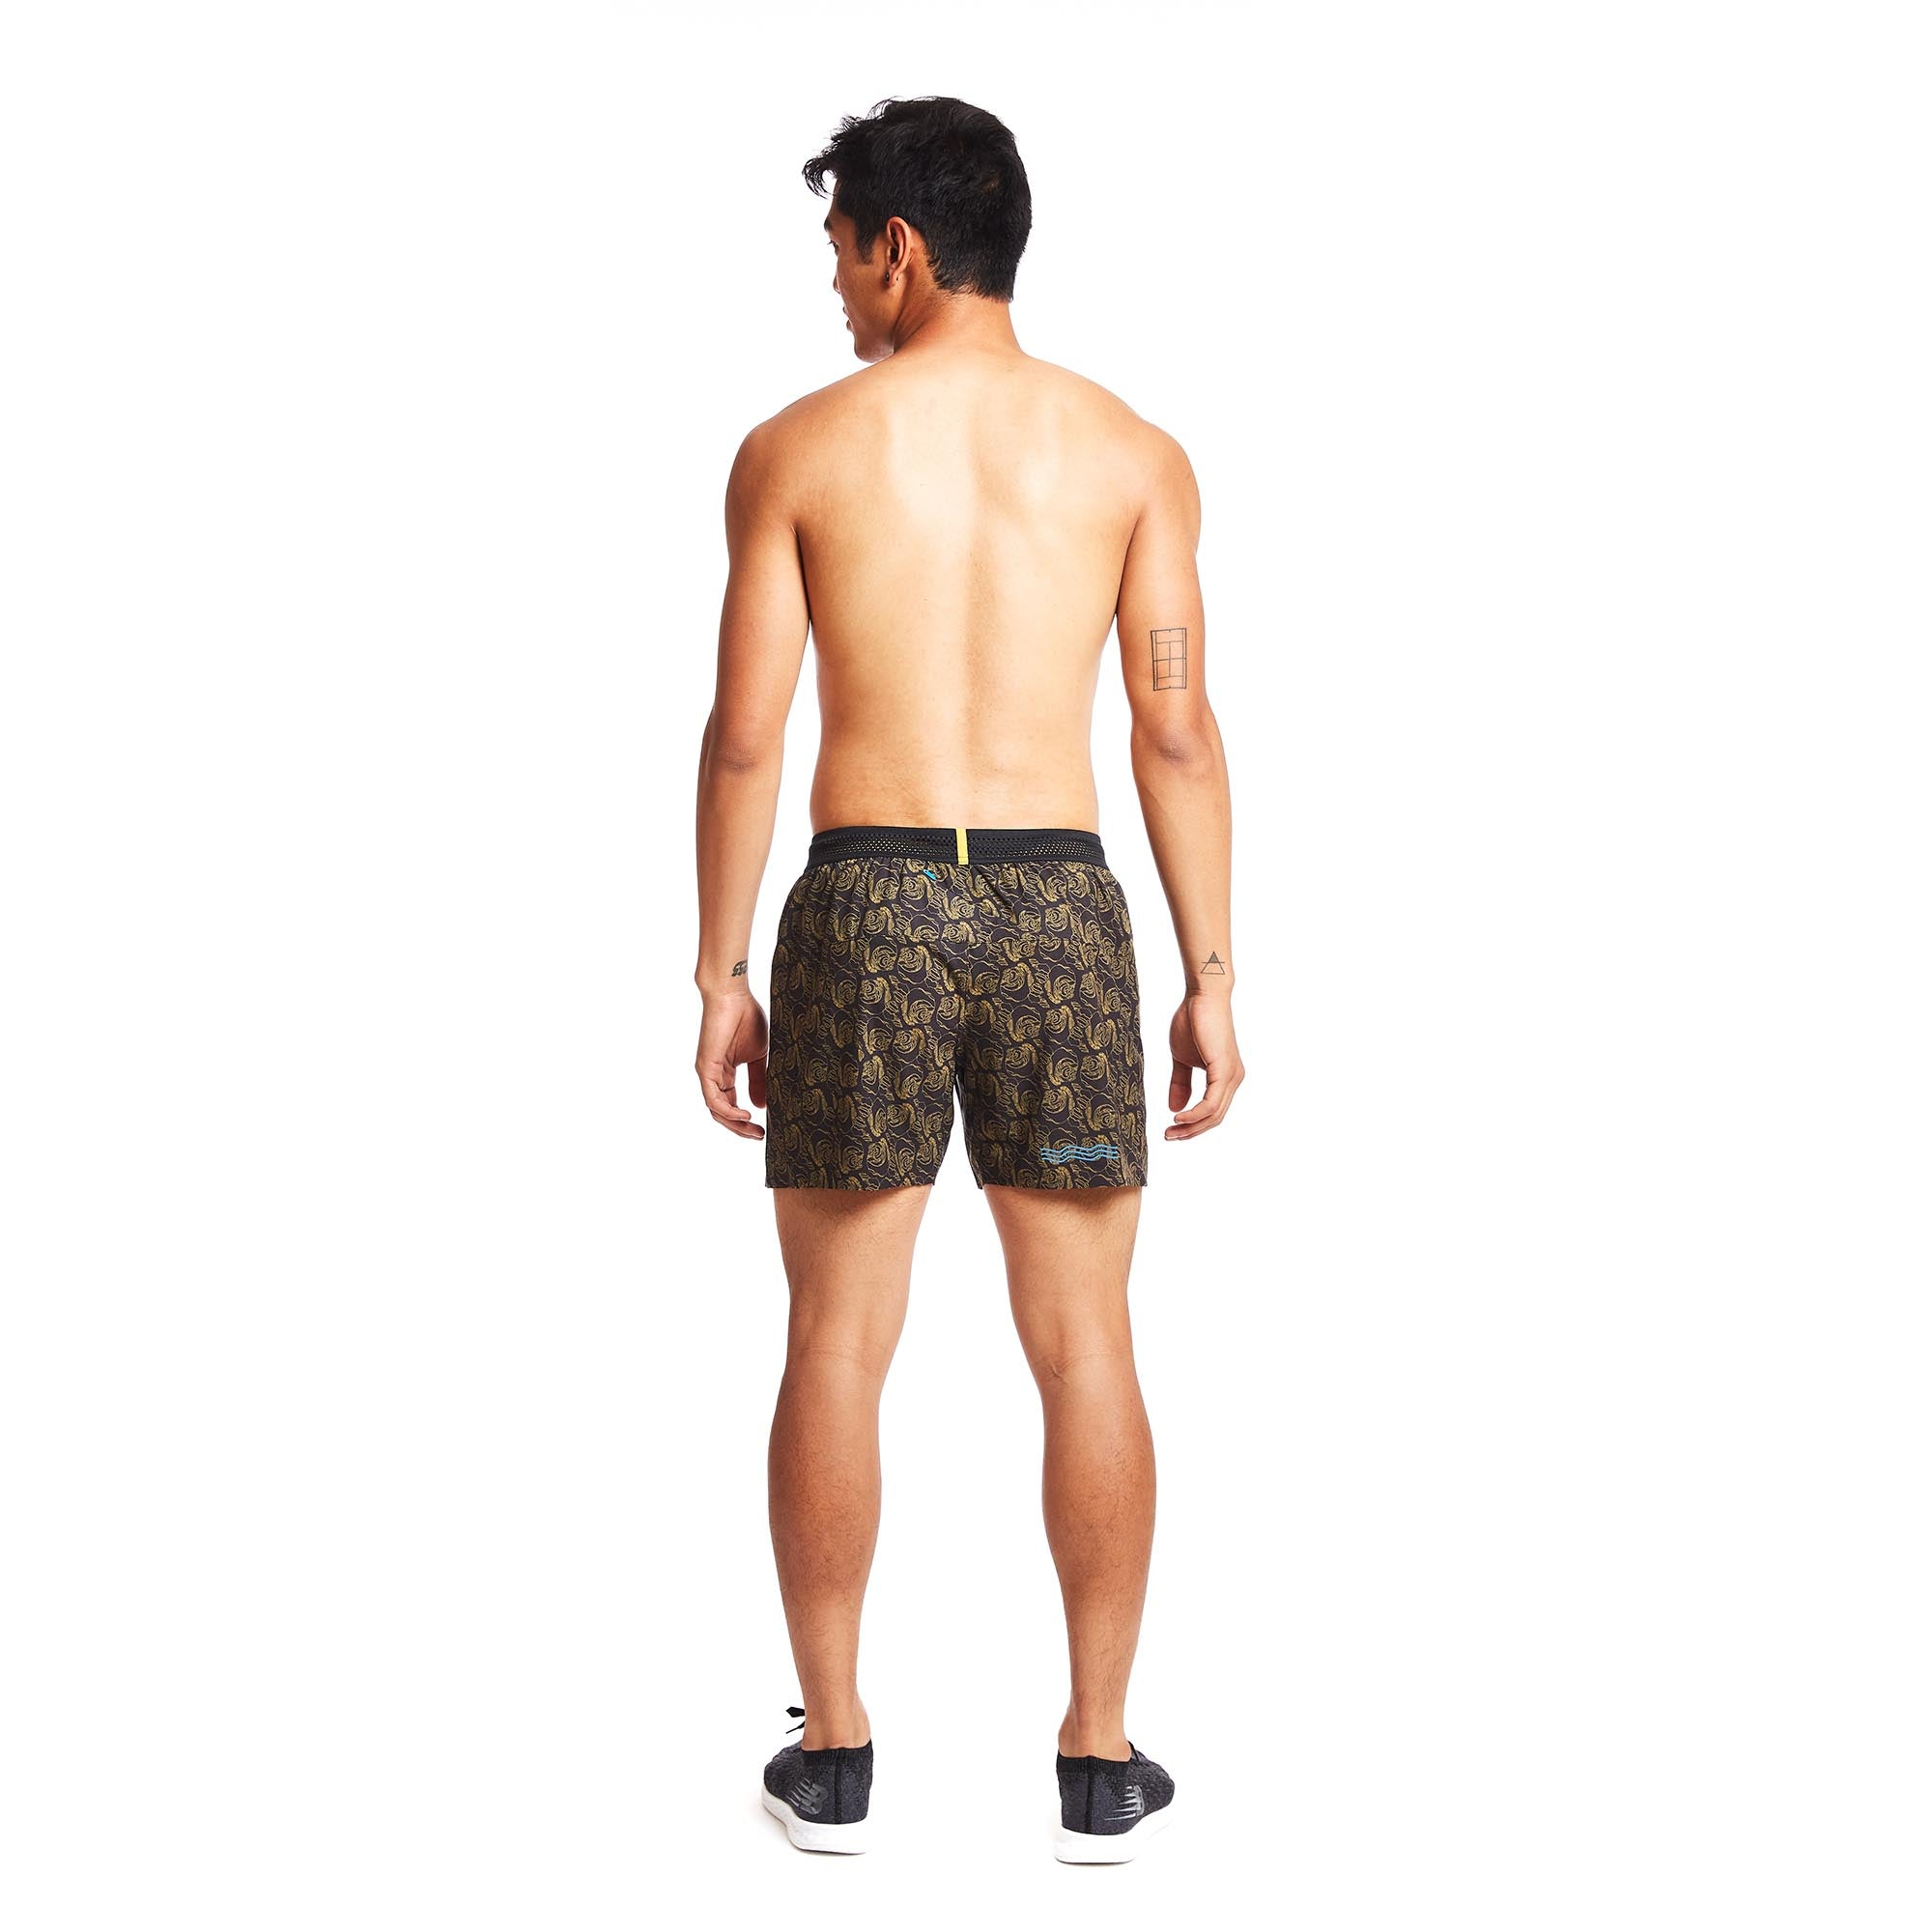 M's 5'' AFO Middle Short in Miel Lace